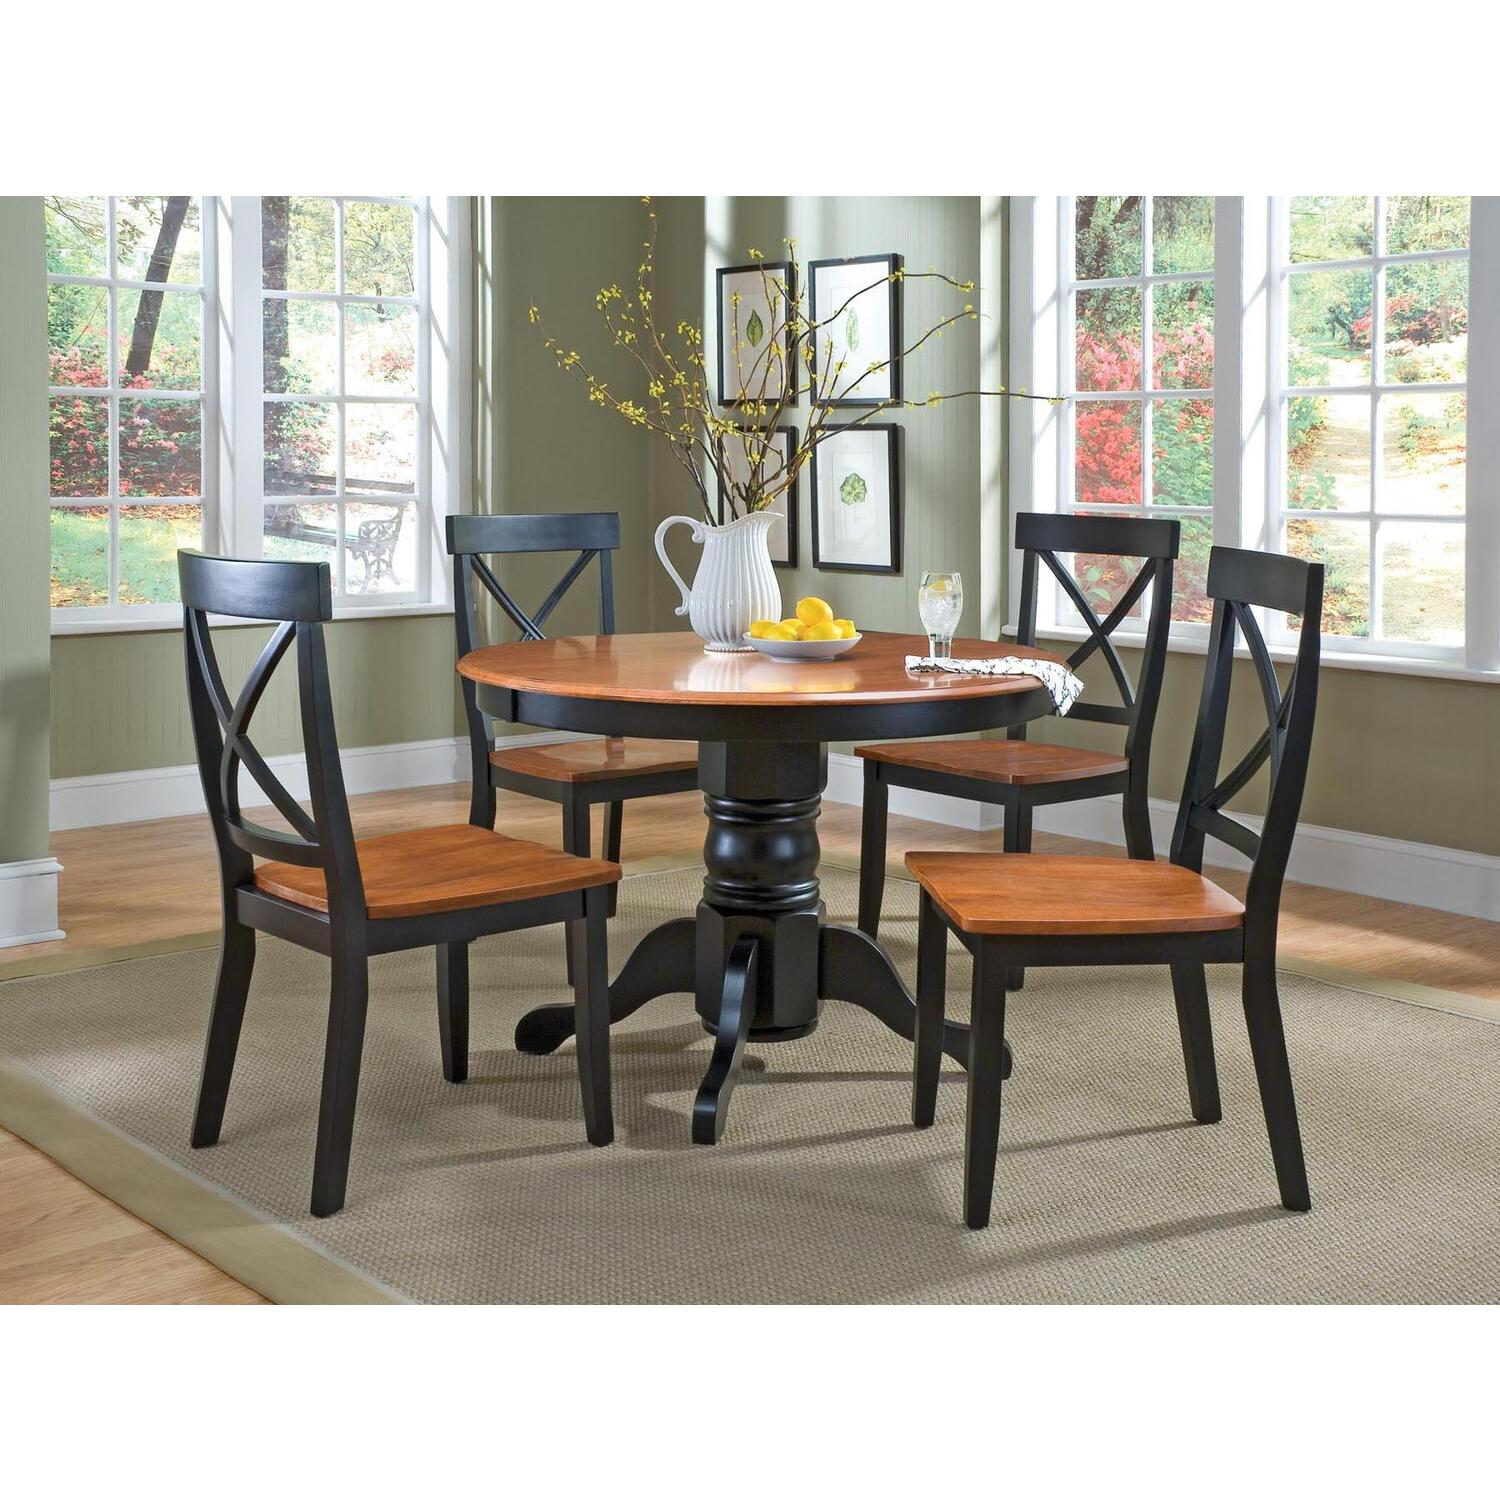 Furniture home goods appliances athletic gear fitness for Small round dining table decorating ideas